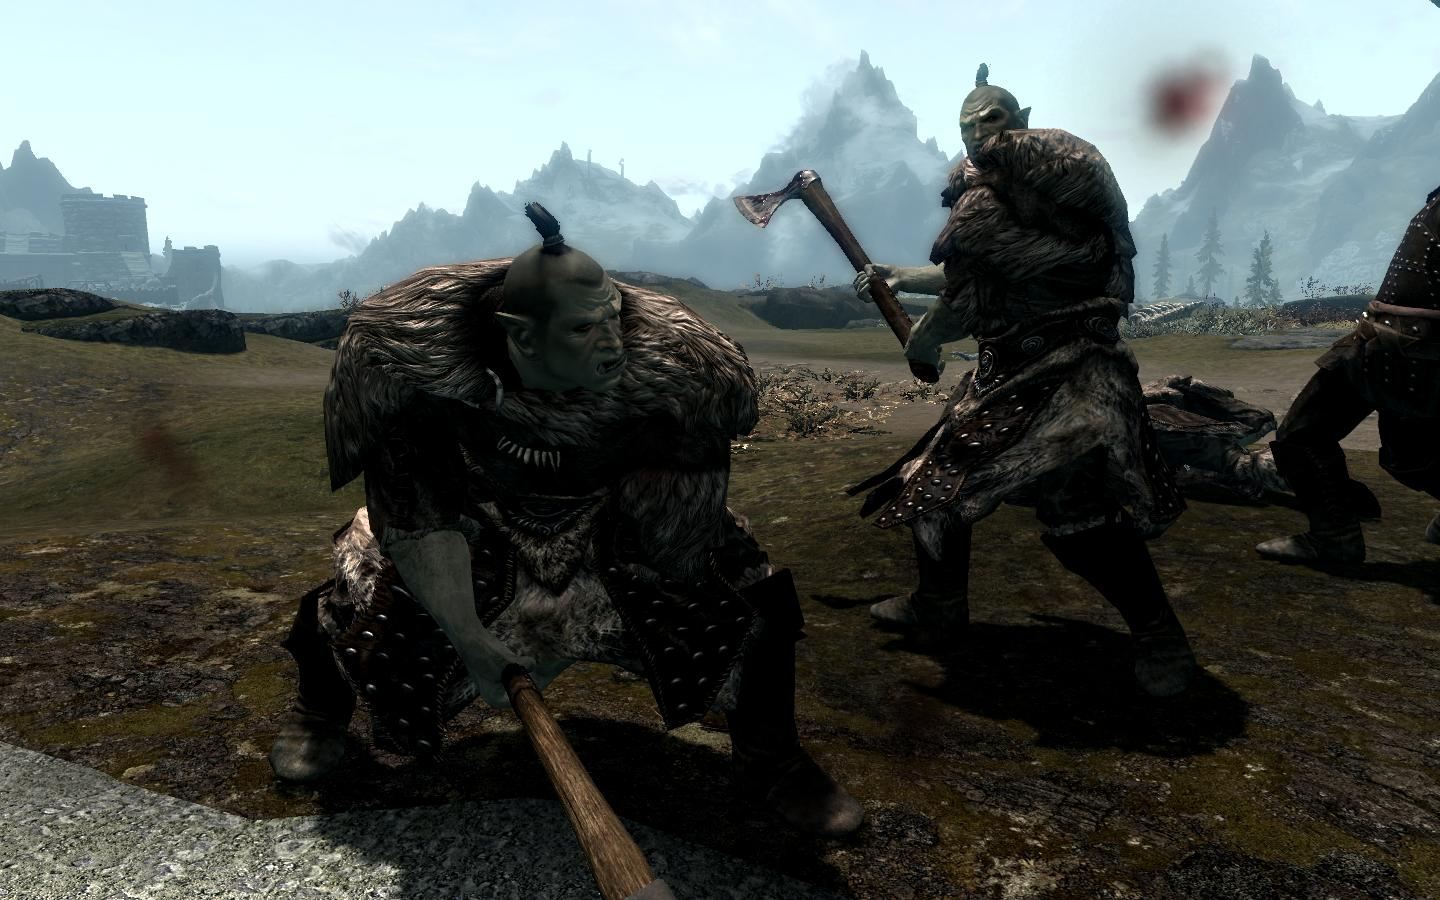 Orc Raiders of Skyrim  天际的兽人突袭者